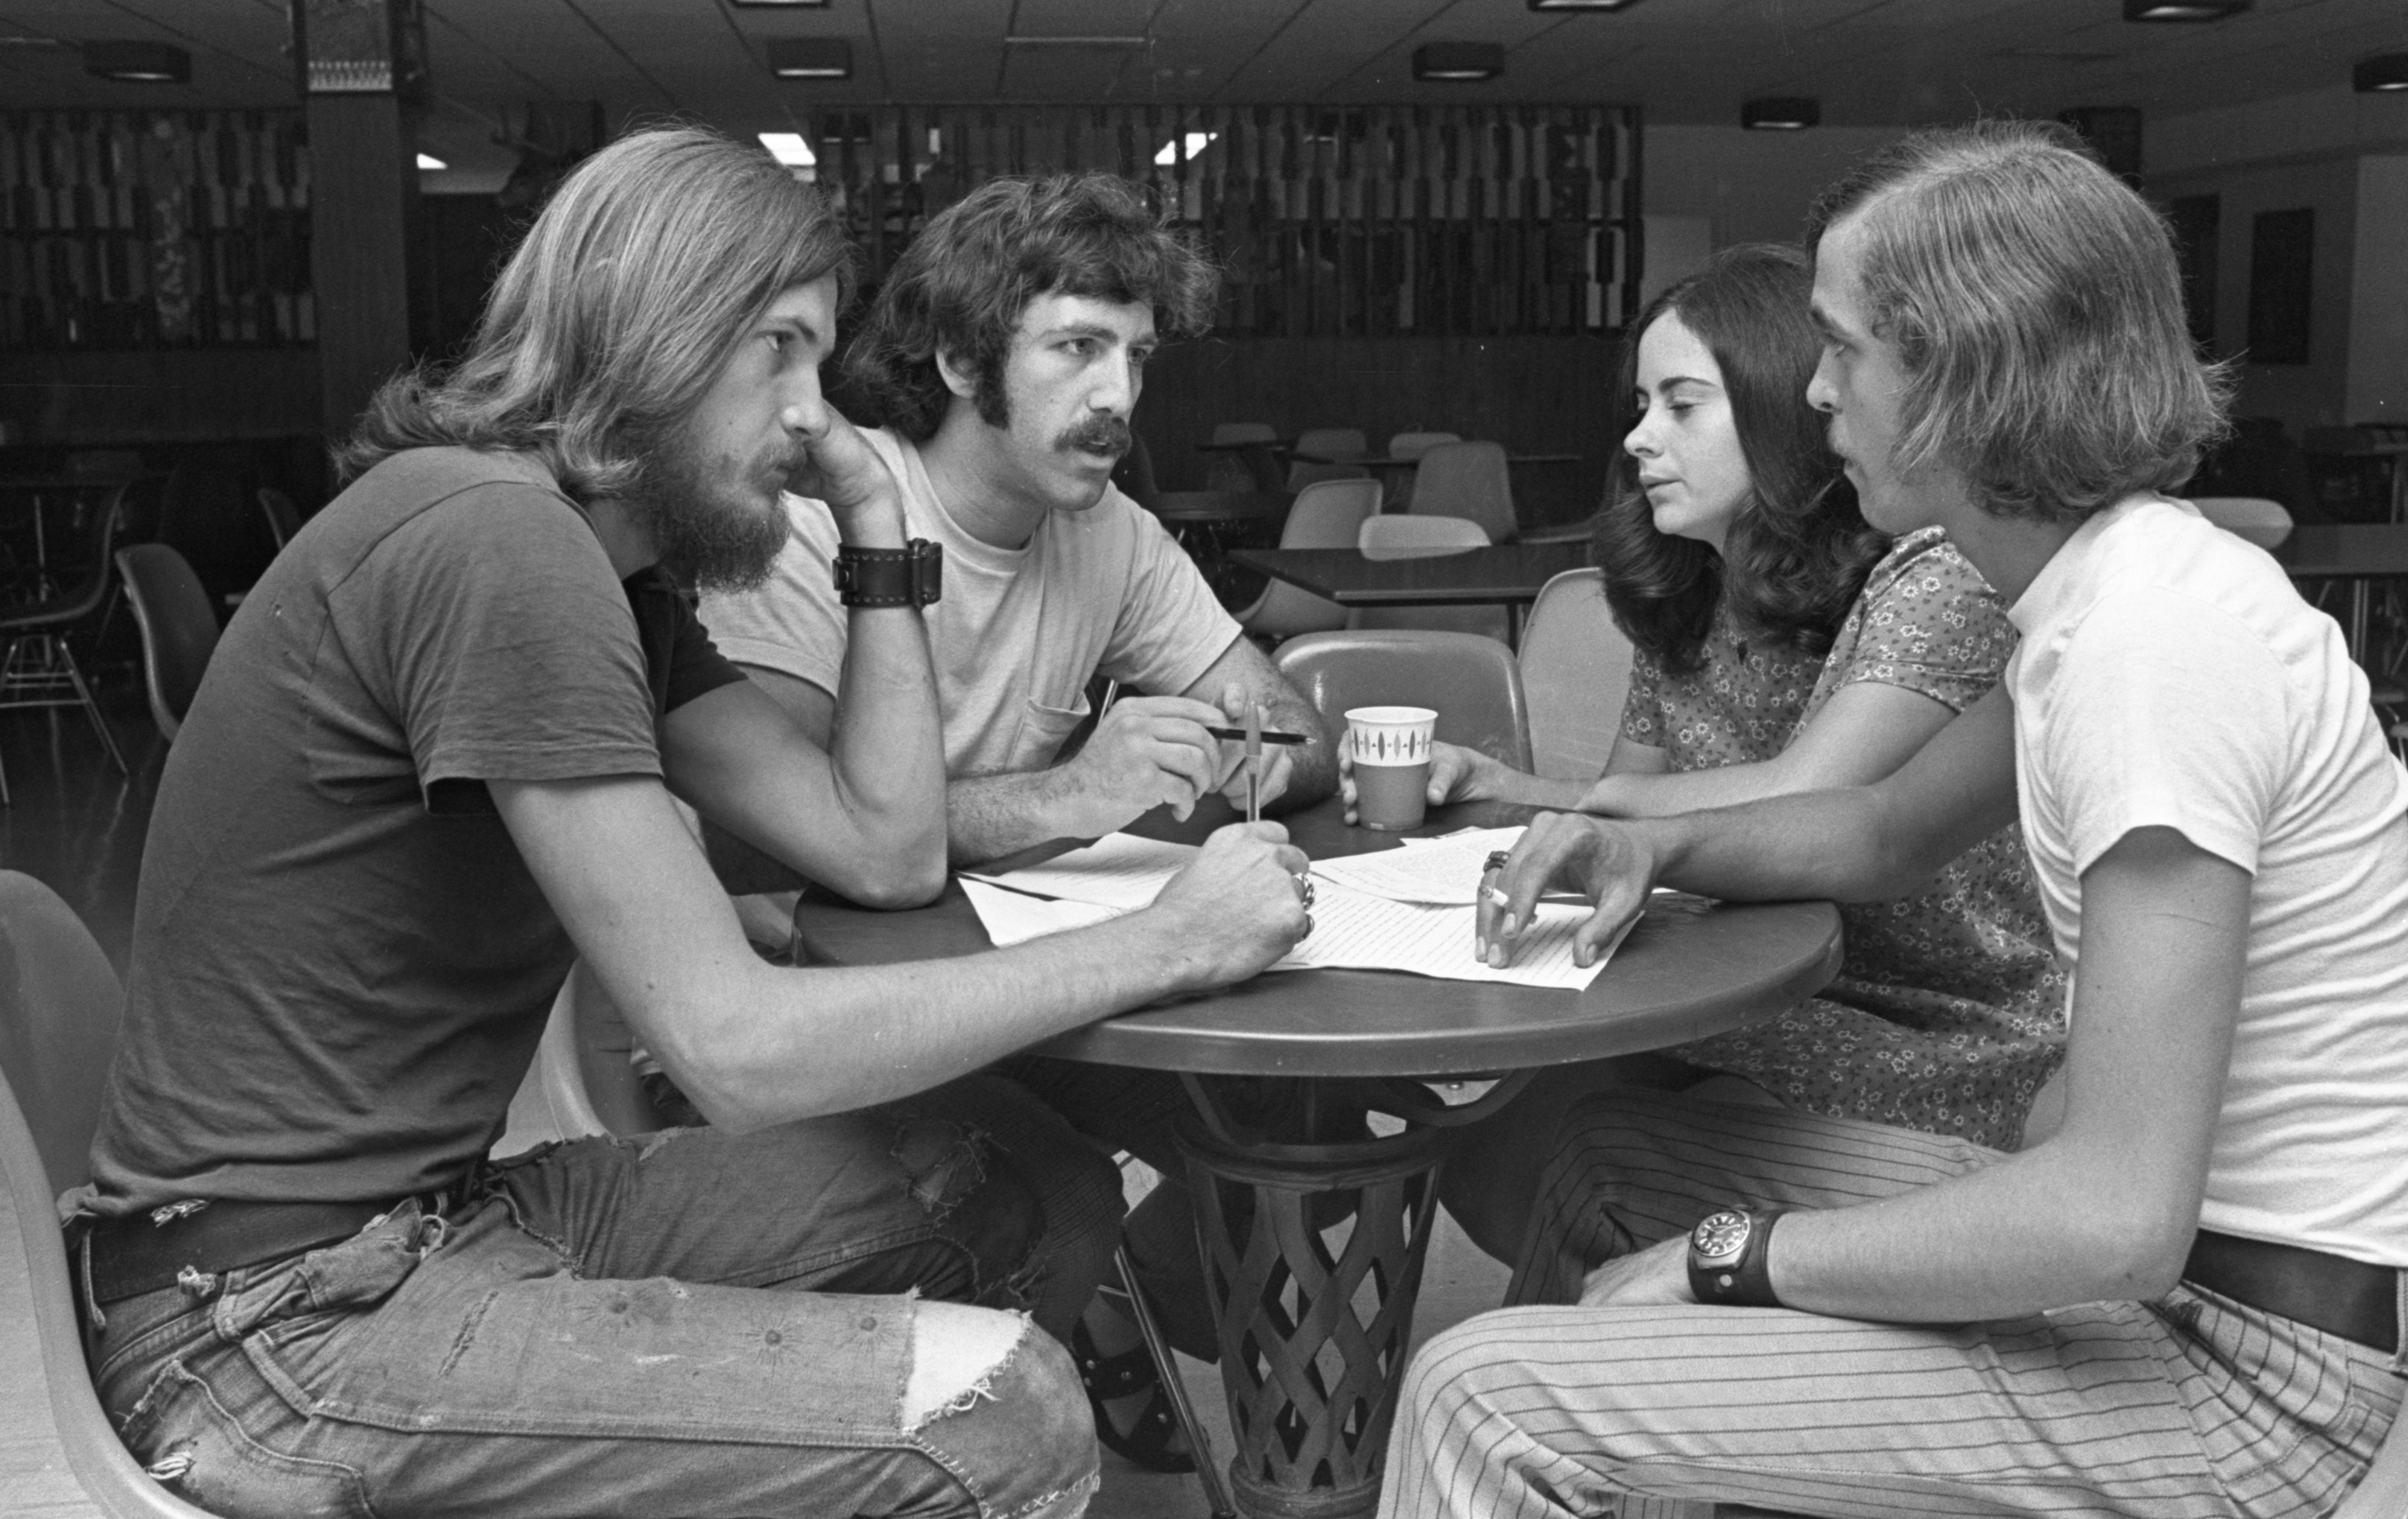 EMU Student Leaders Discuss The Upcoming School Year, August 1970 image